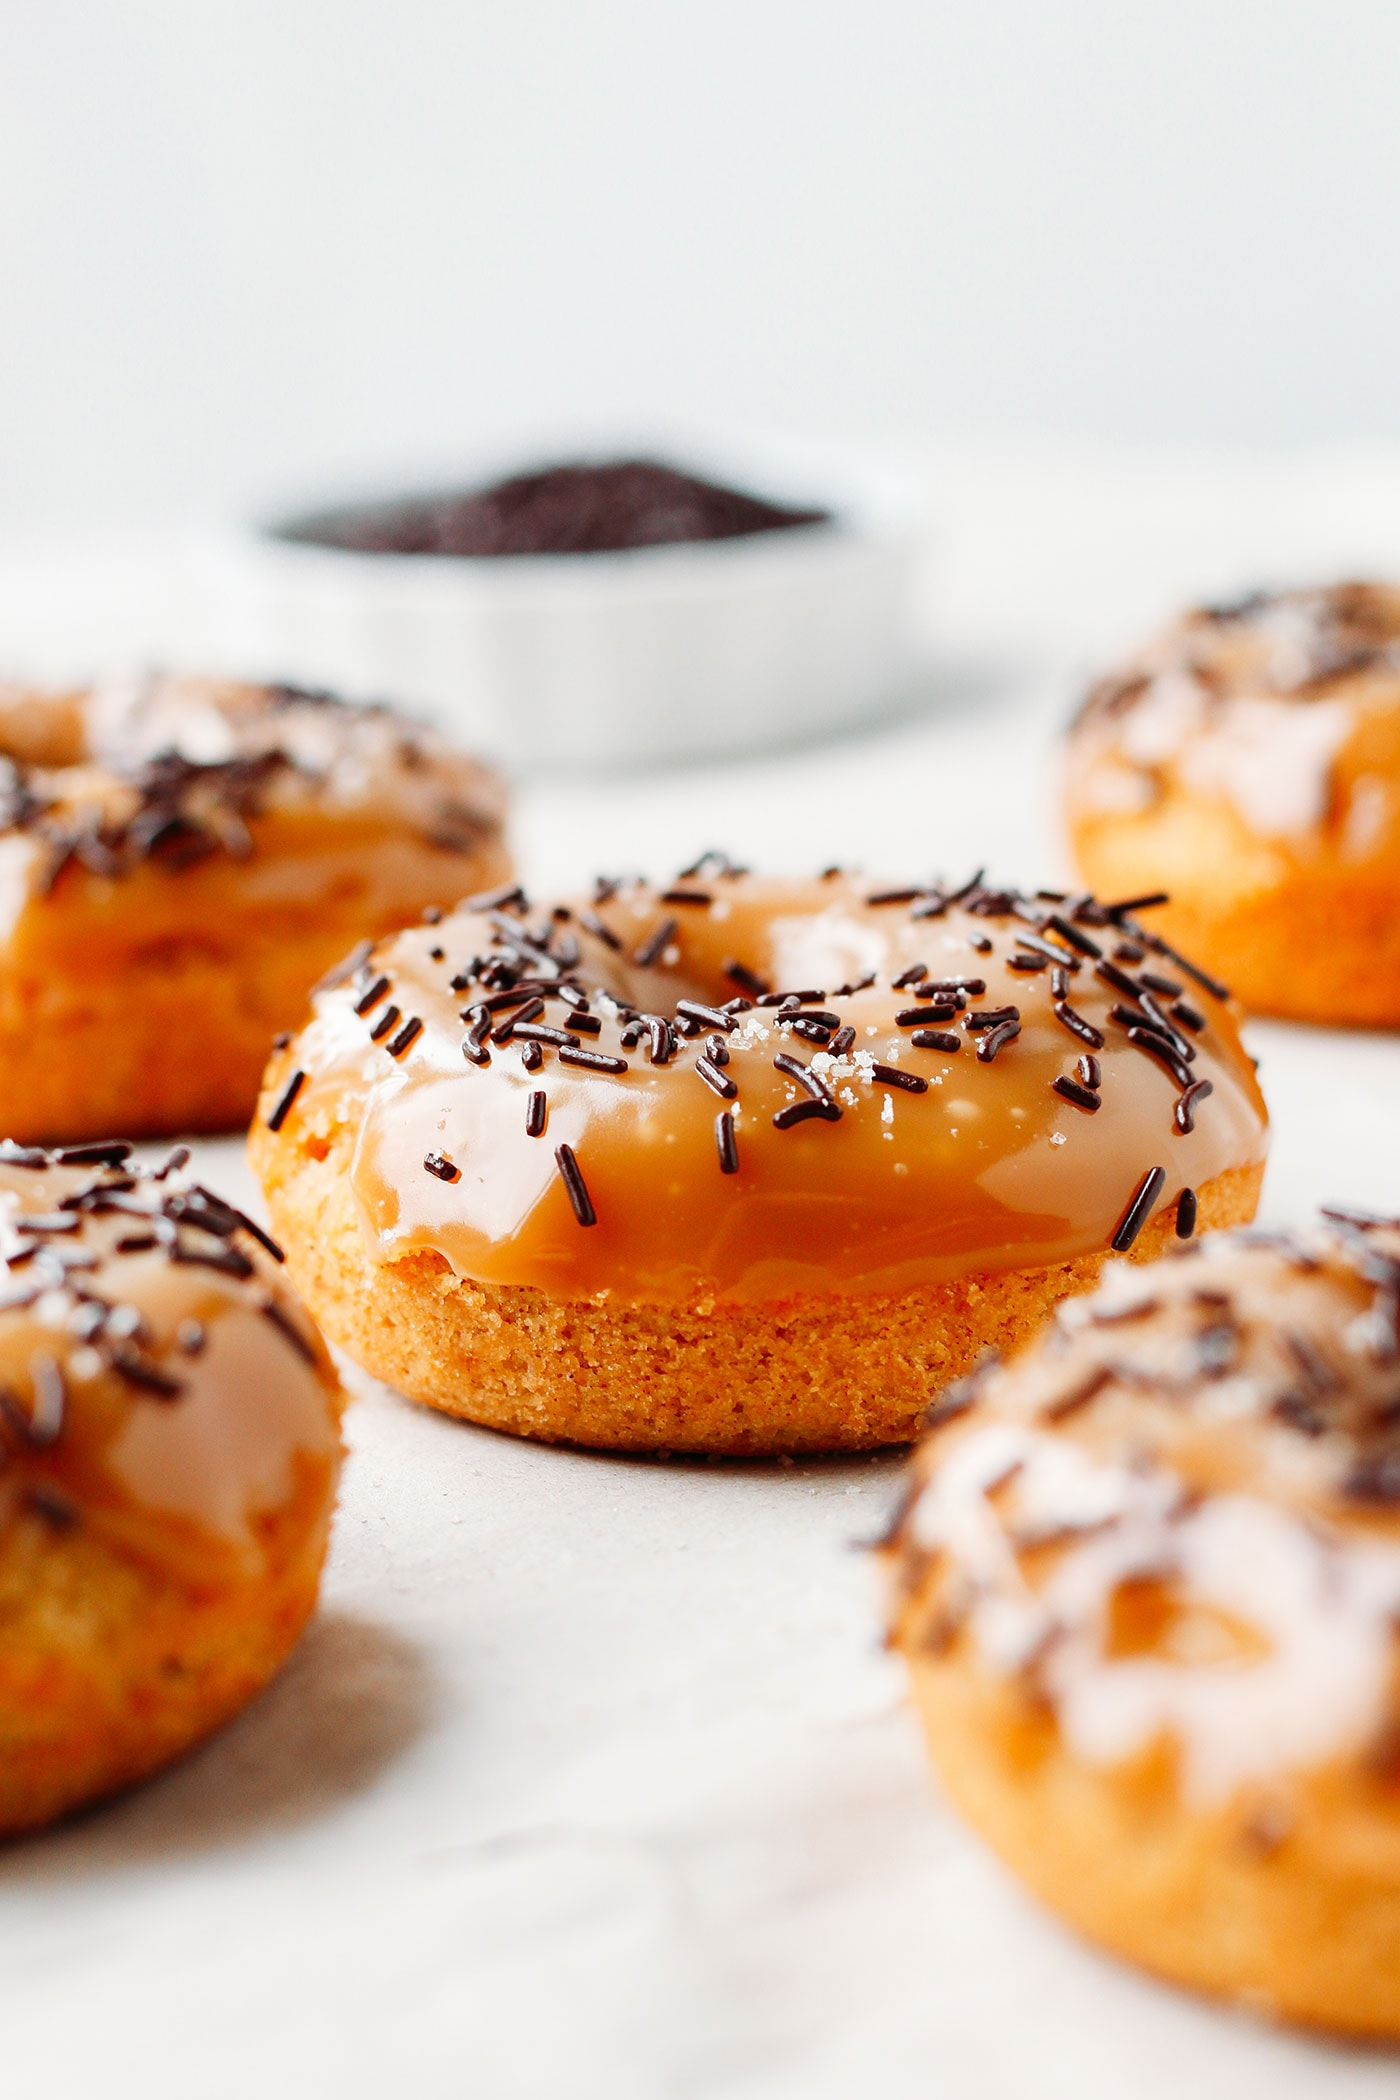 Vegan Baked Orange Donuts with Salted Caramel Glaze